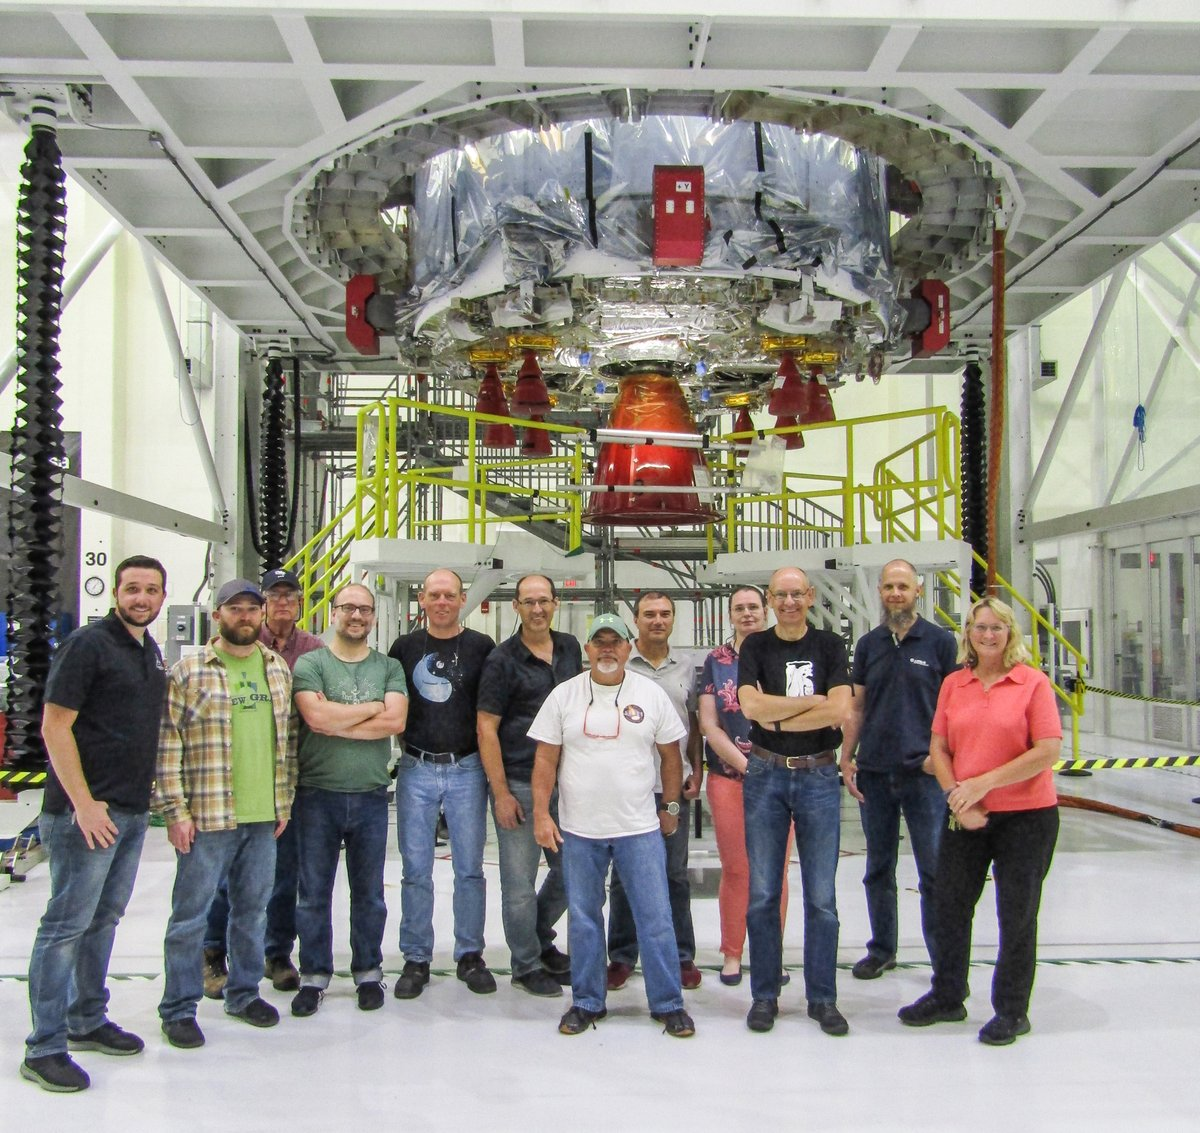 http://blogs.esa.int/orion/files/2019/04/Installation-nozzle-ESM.jpg